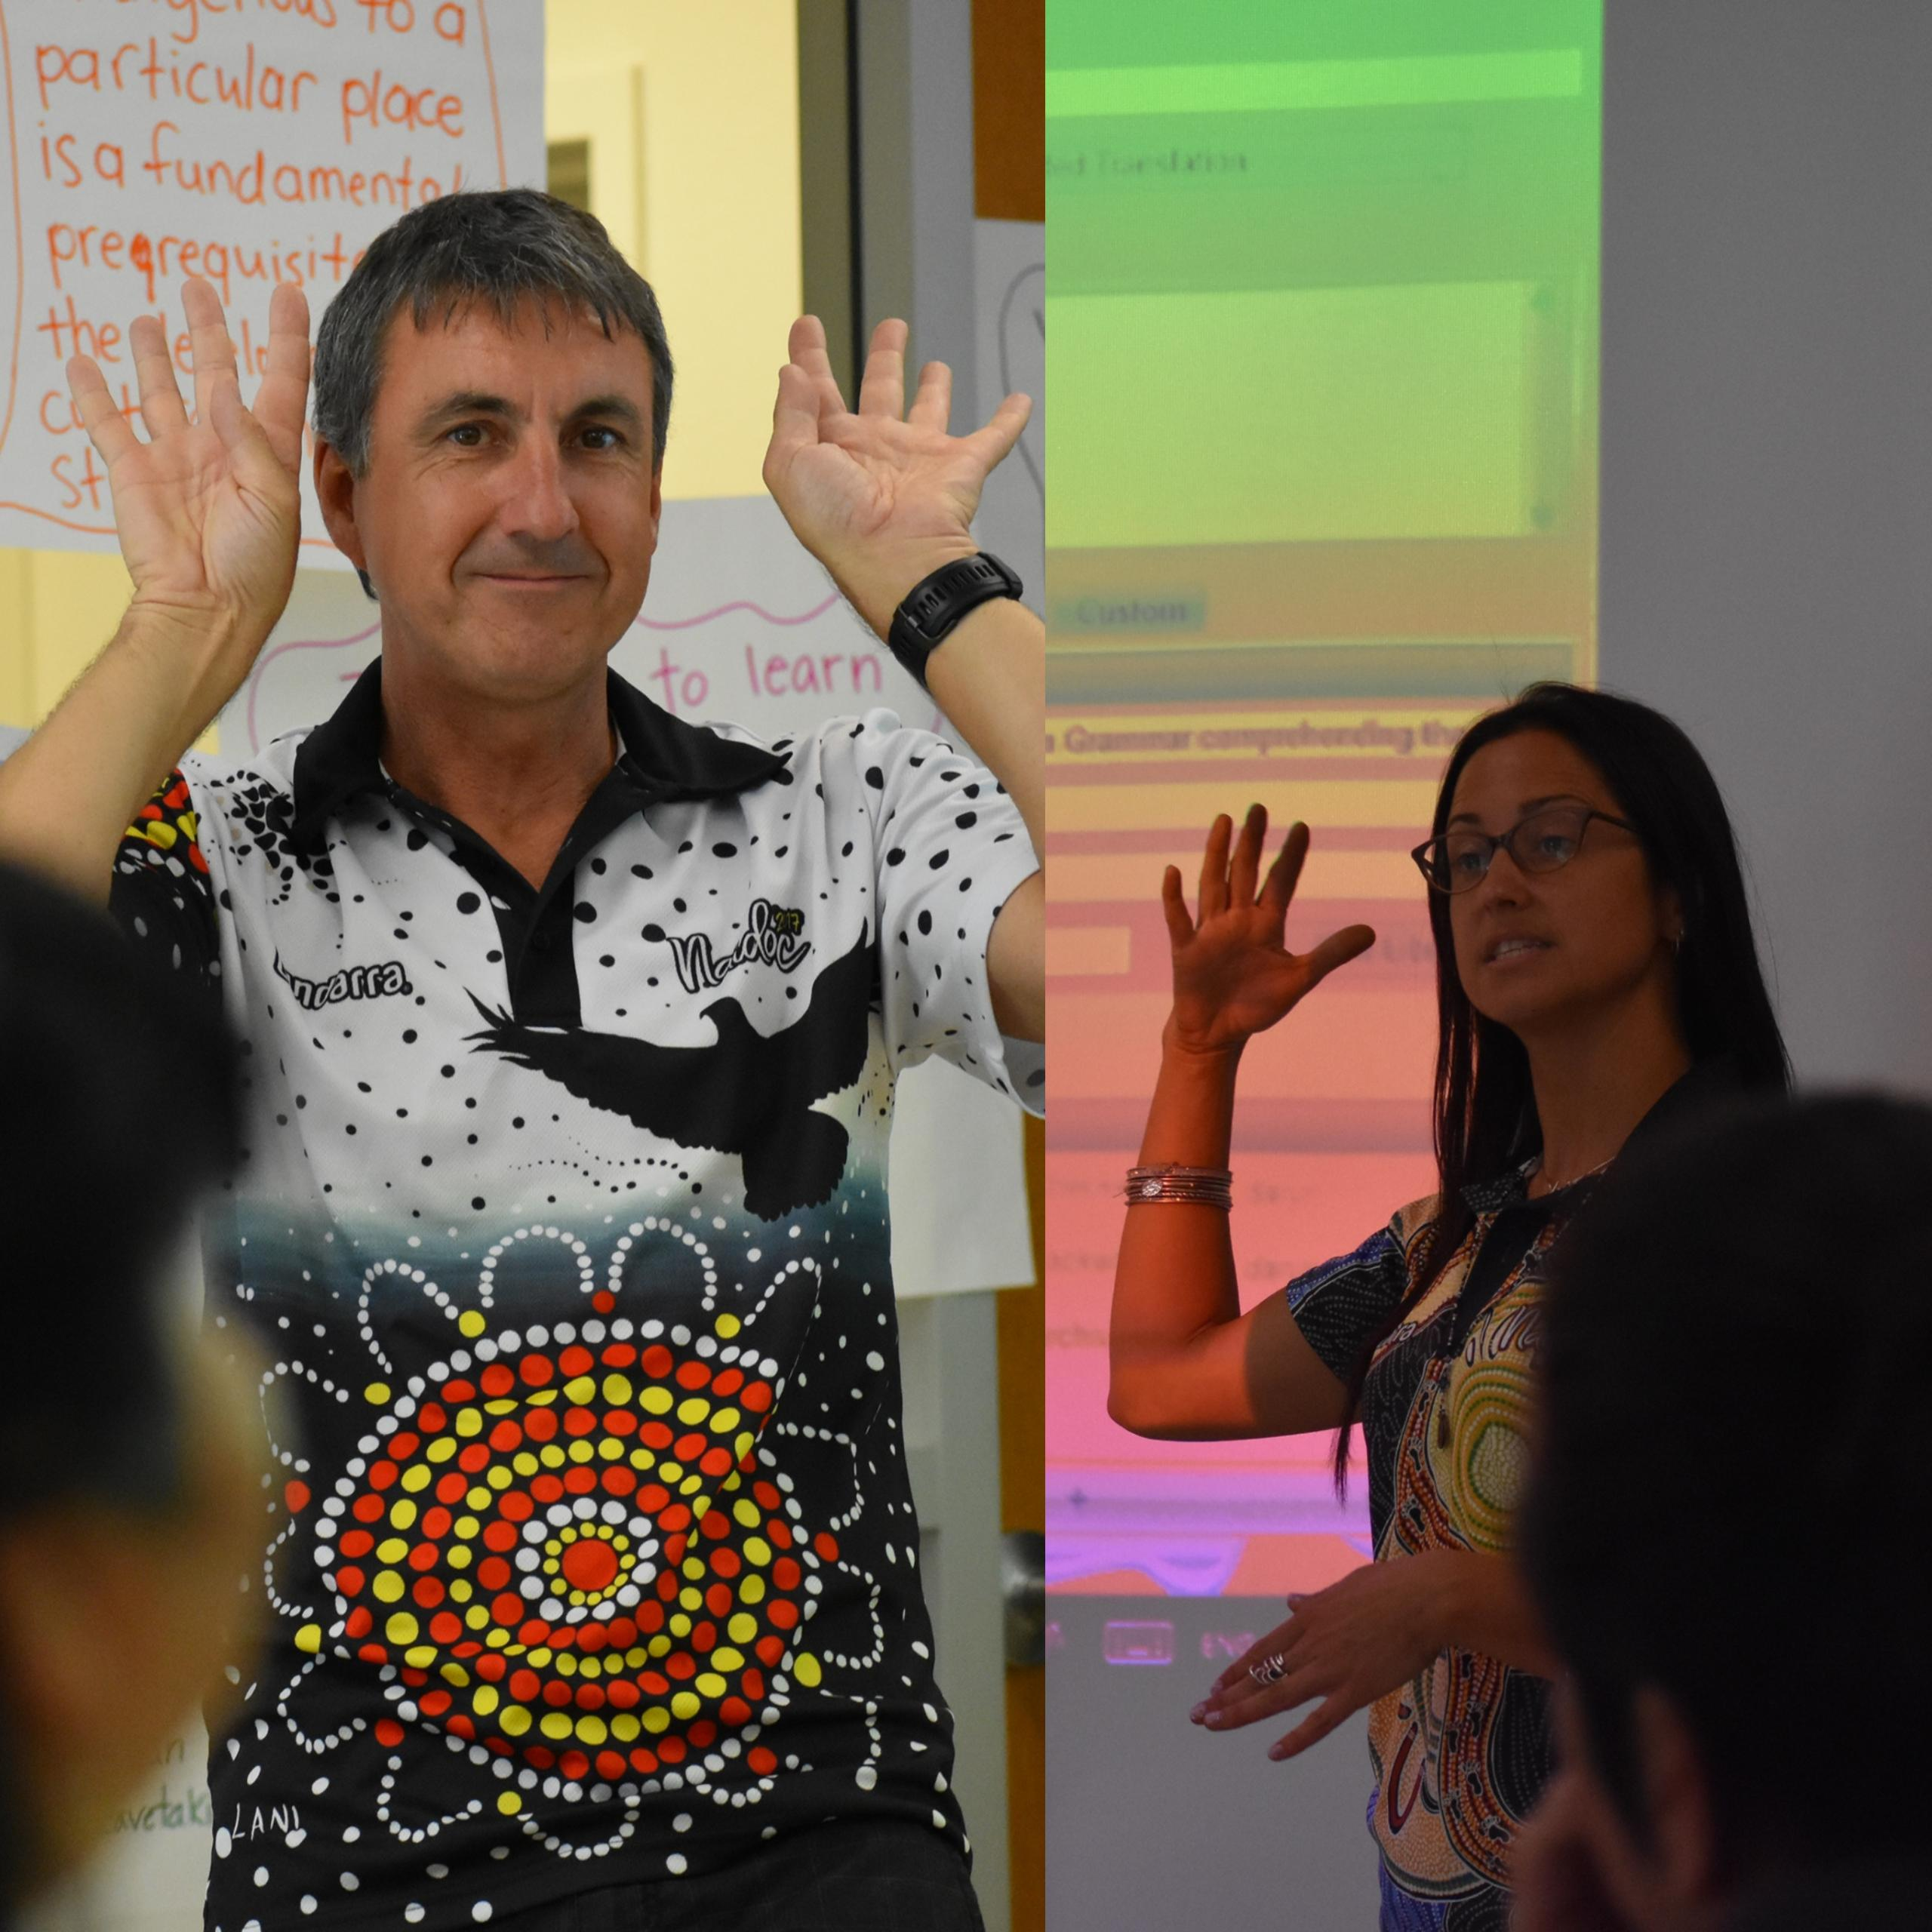 A photo of Daryn Mckenny, a guest speaker for AILDI's summer session